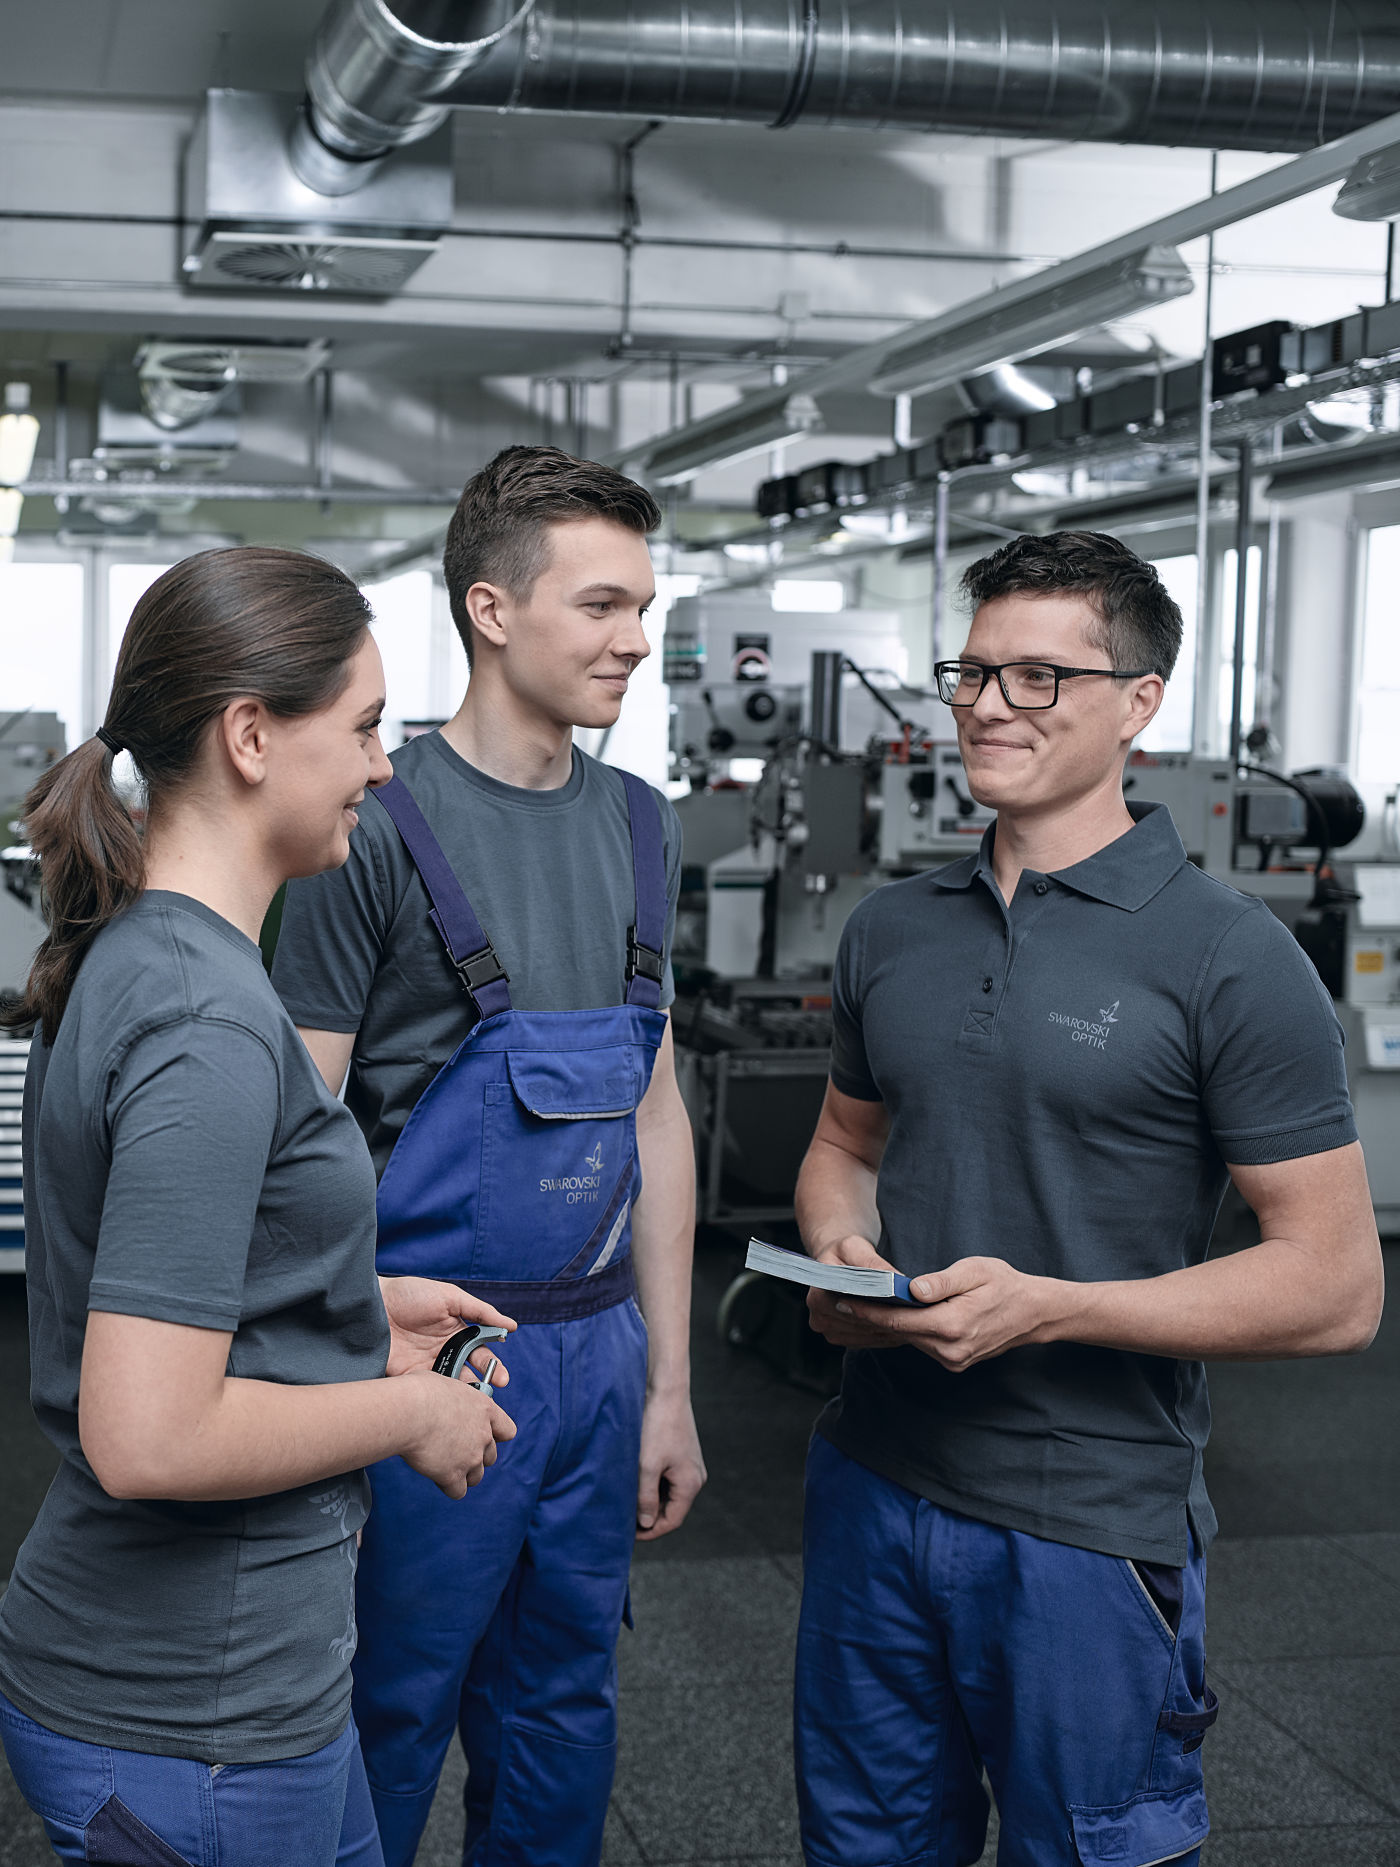 SWAROVSKI OPTIK has been training apprentices in our own training workshops in Absam, Tyrol since the company was founded in 1949 in the fields of cutting technology, precision optics and, starting in 2019, automation and process control technology.